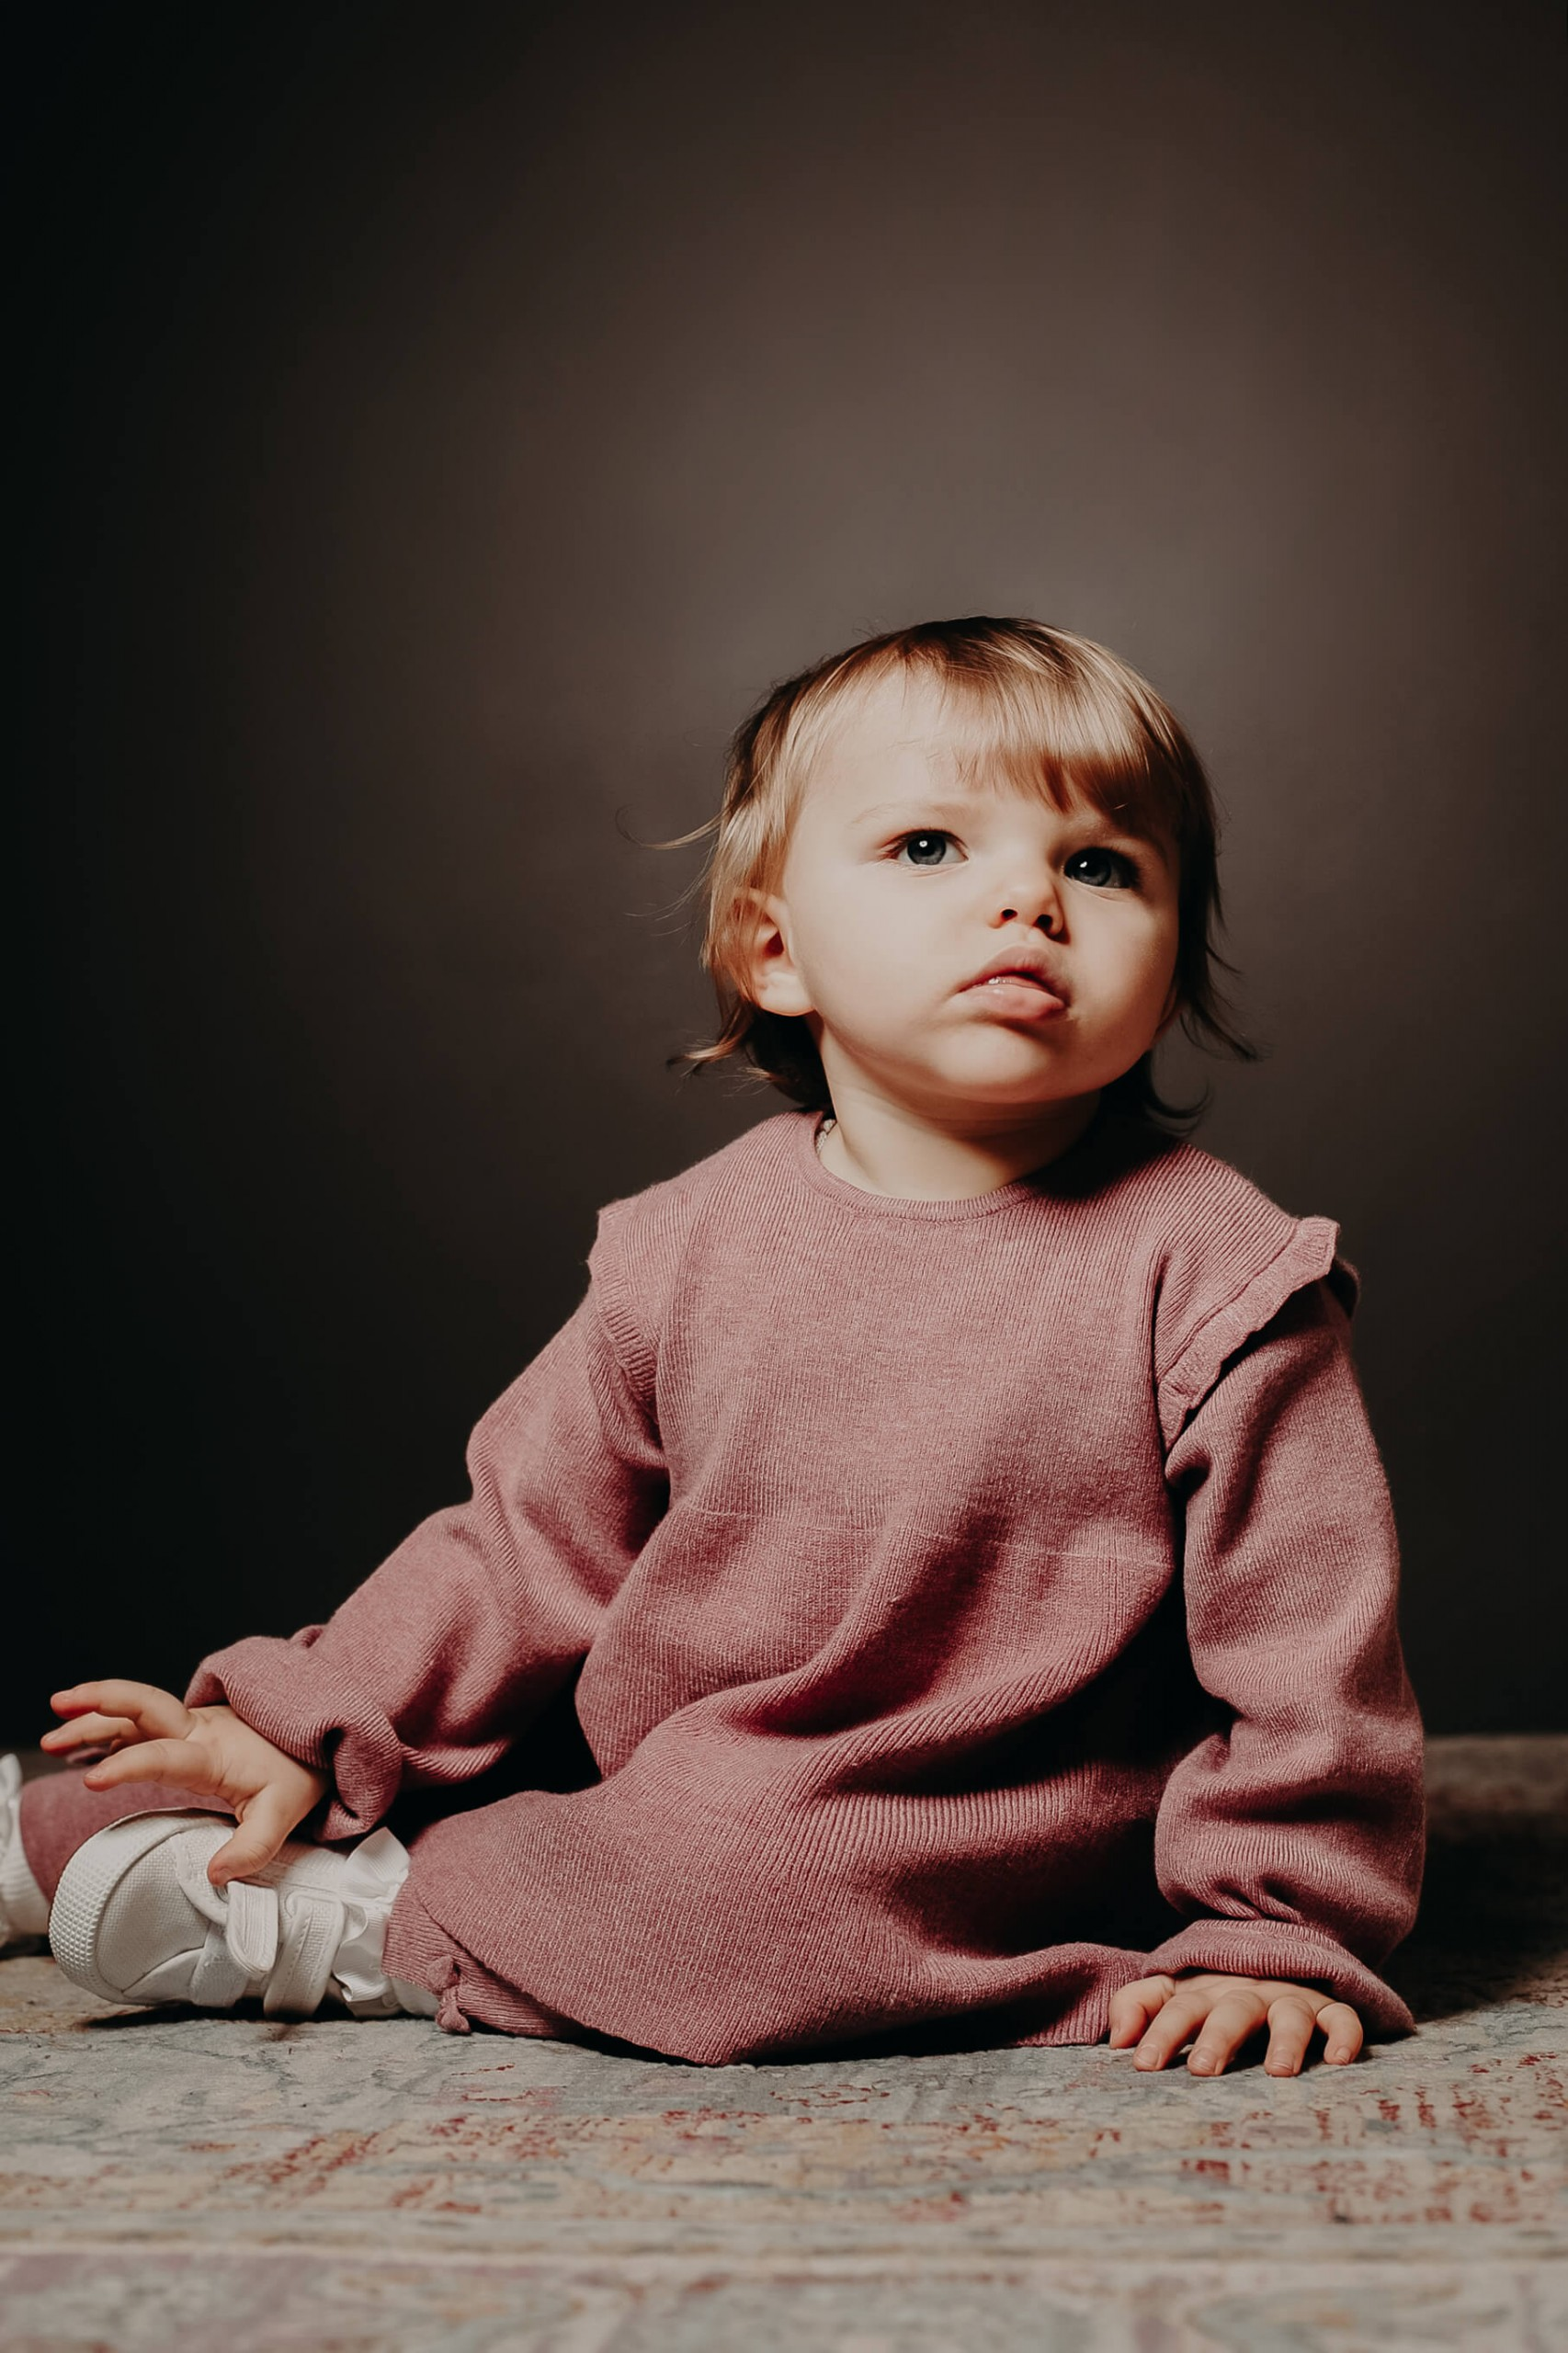 Stunning individual portrait featuring young child.